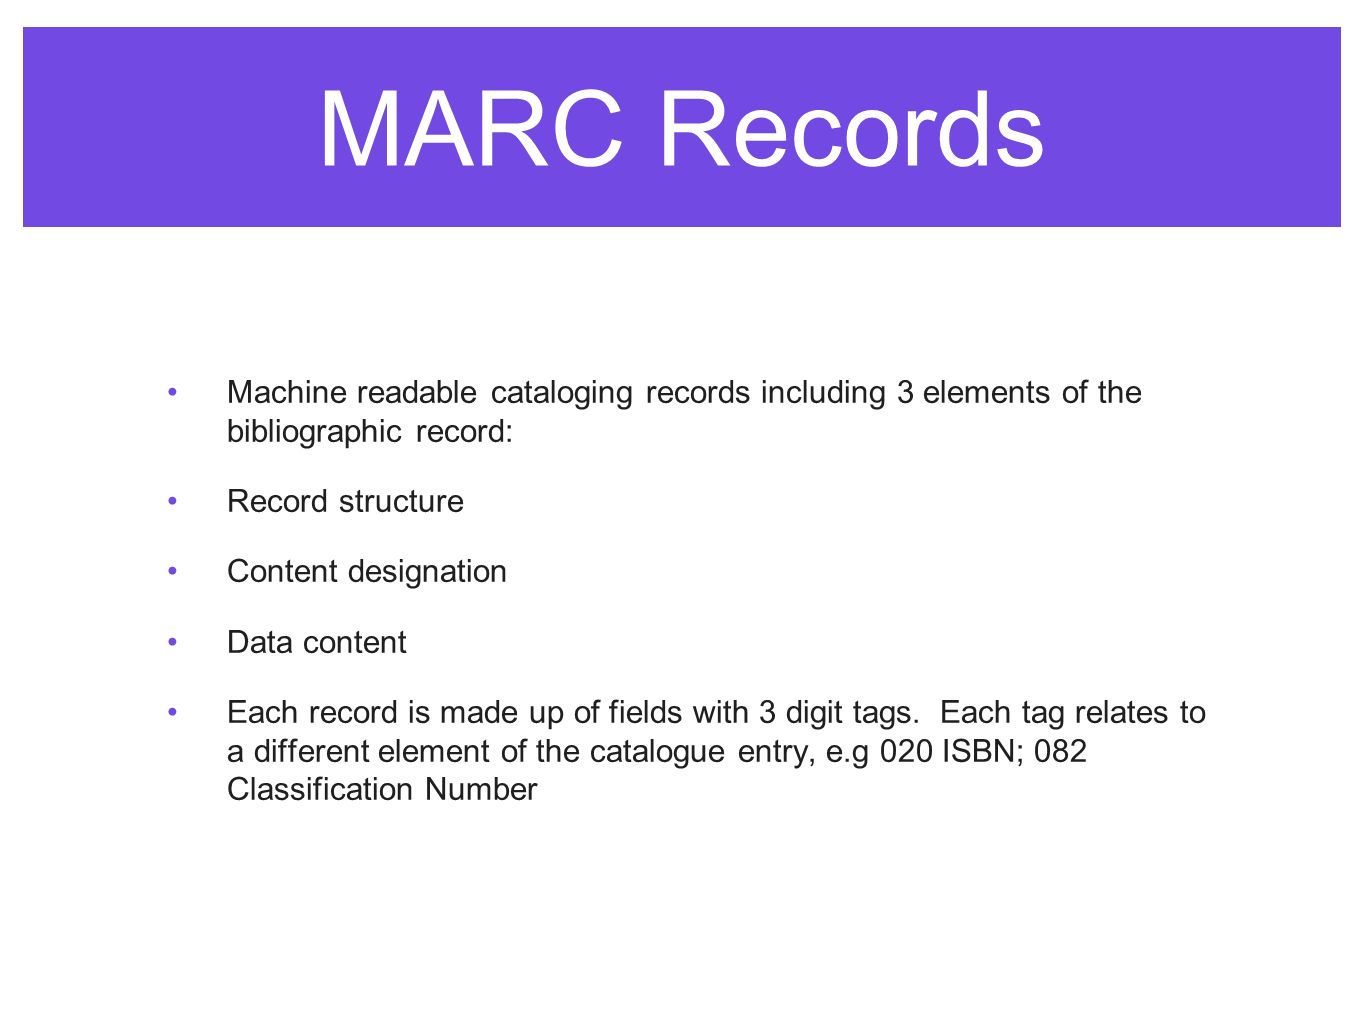 MARC Records Machine readable cataloging records including 3 elements of the bibliographic record: Record structure Content designation Data content Each record is made up of fields with 3 digit tags.